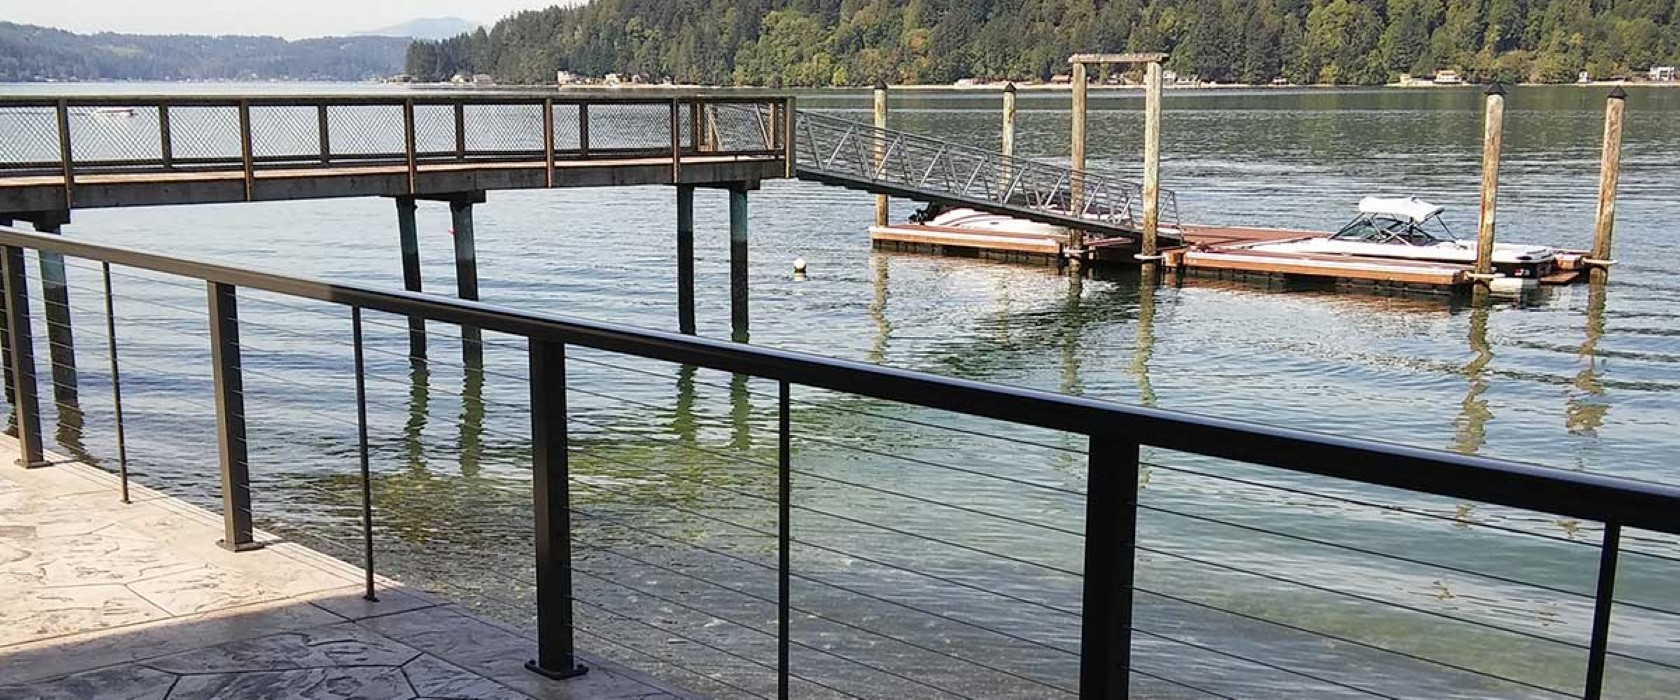 Stainless Steel Cable Railing   CrystaLite, Inc.